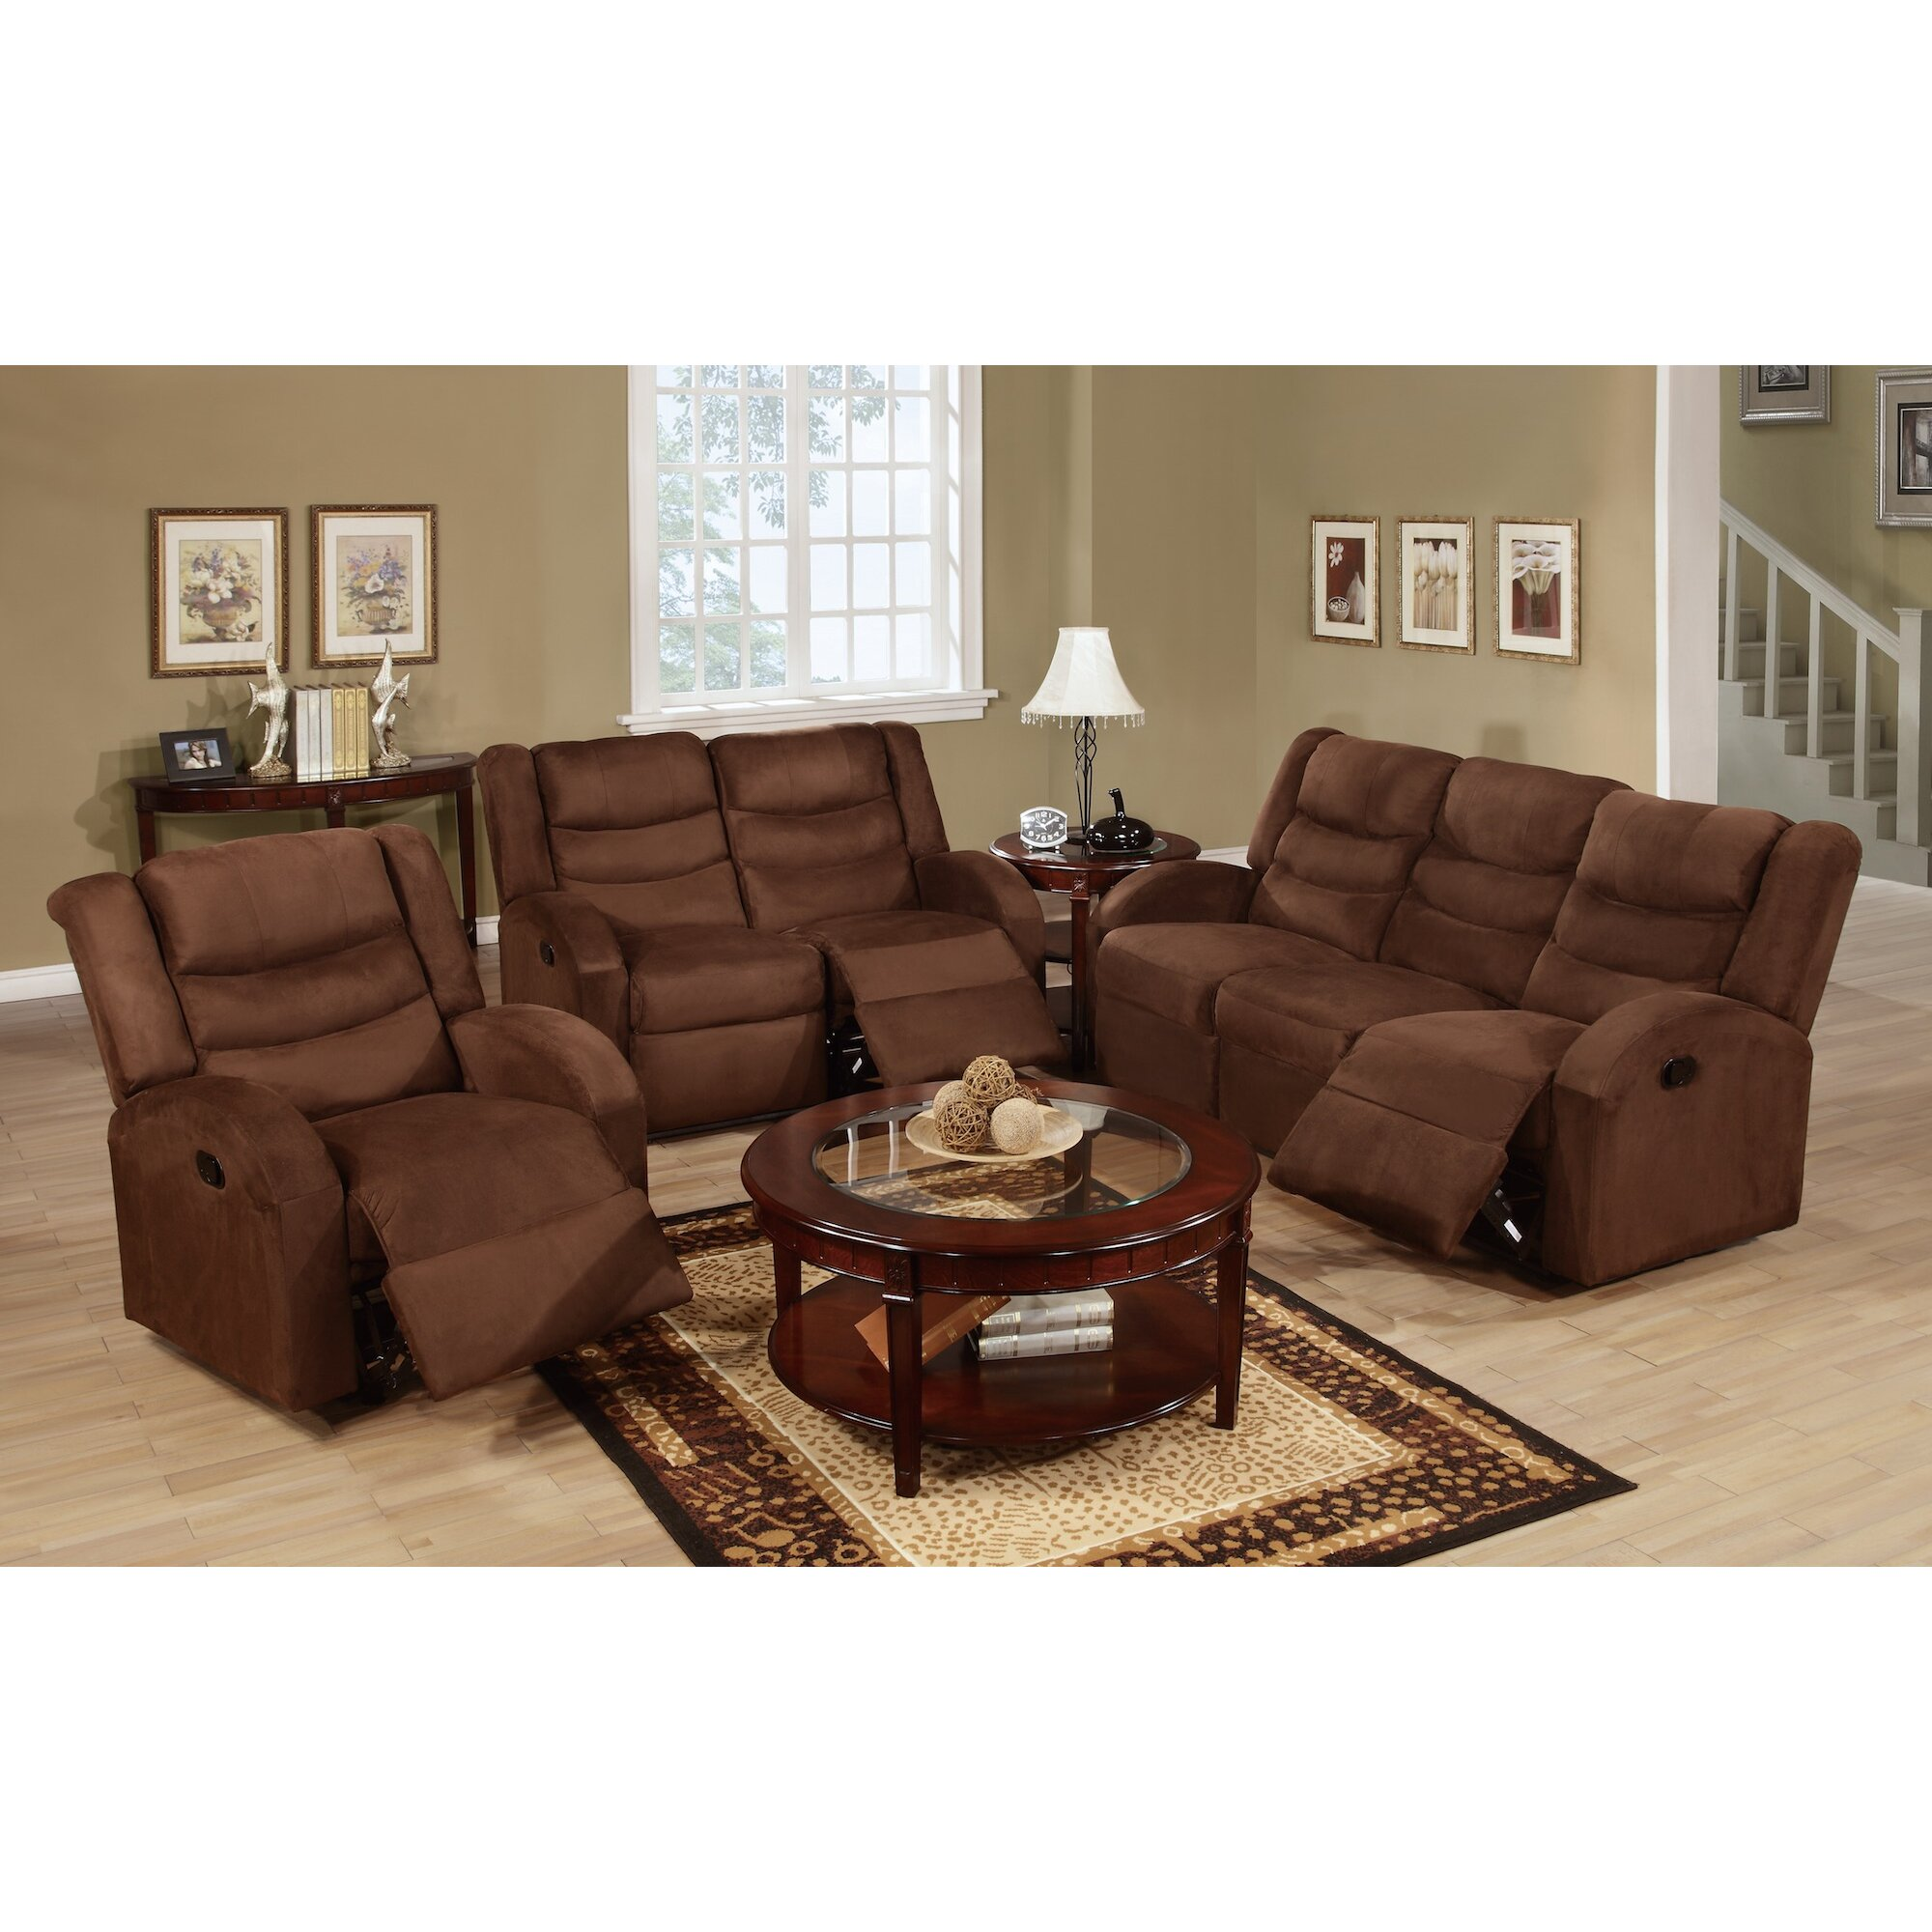 Infini Furnishings Mason Reclining Sofa Wayfair